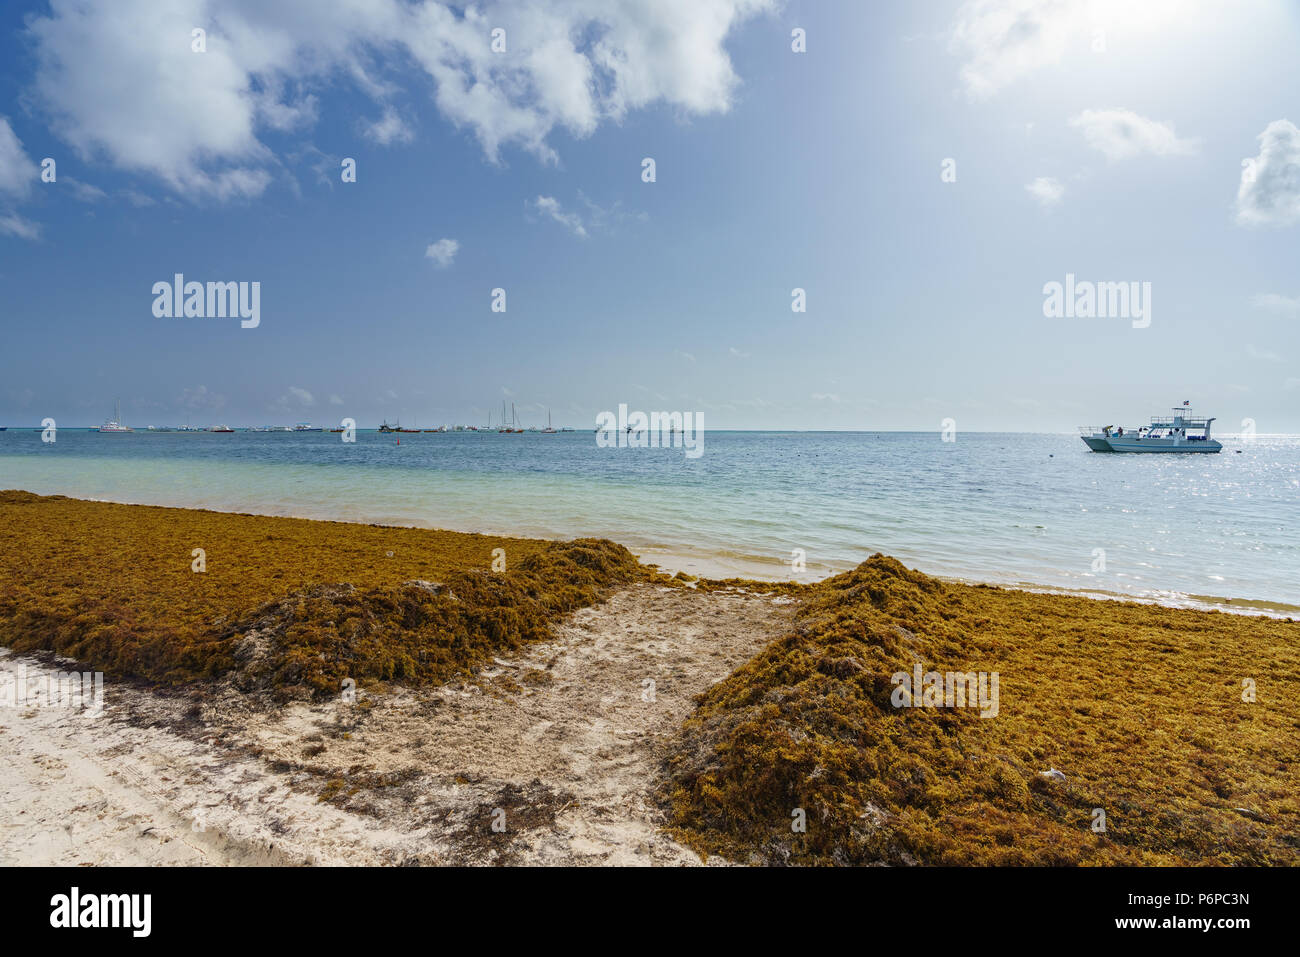 Punta Cana, Dominican Republic - June 17, 2018: sargassum seaweeds on the beaytiful ocean beach in Bavaro, Punta Cana, the result of global warming climate change. - Stock Image